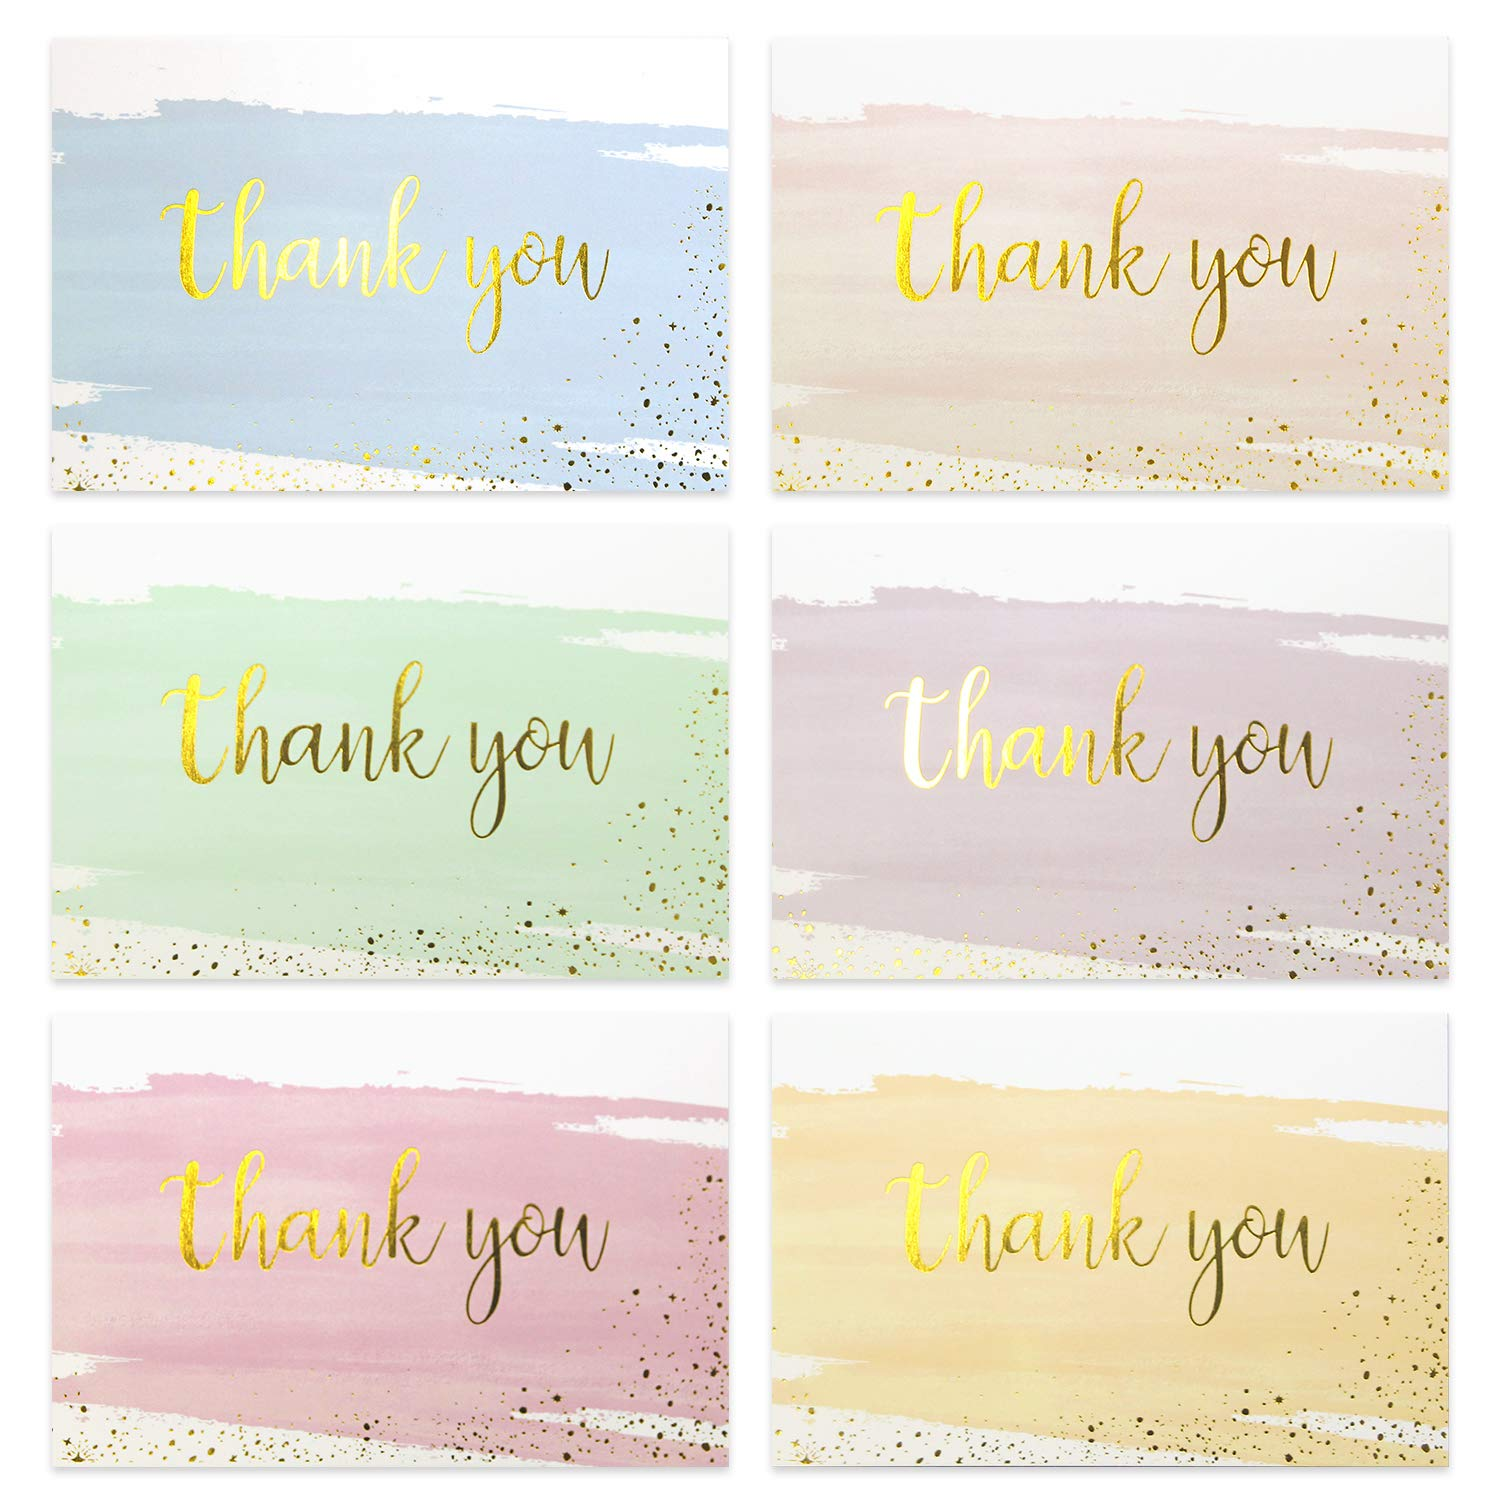 Thank You Cards, TODWALK 48 (6 Colors, 8 of Each) Thanksgiving Day Painted Watercolor Note Cards with Envelopes, Blank Greeting Cards for All Occasion, Birthdays, Weddings, Baby Shower, Bridal Shower